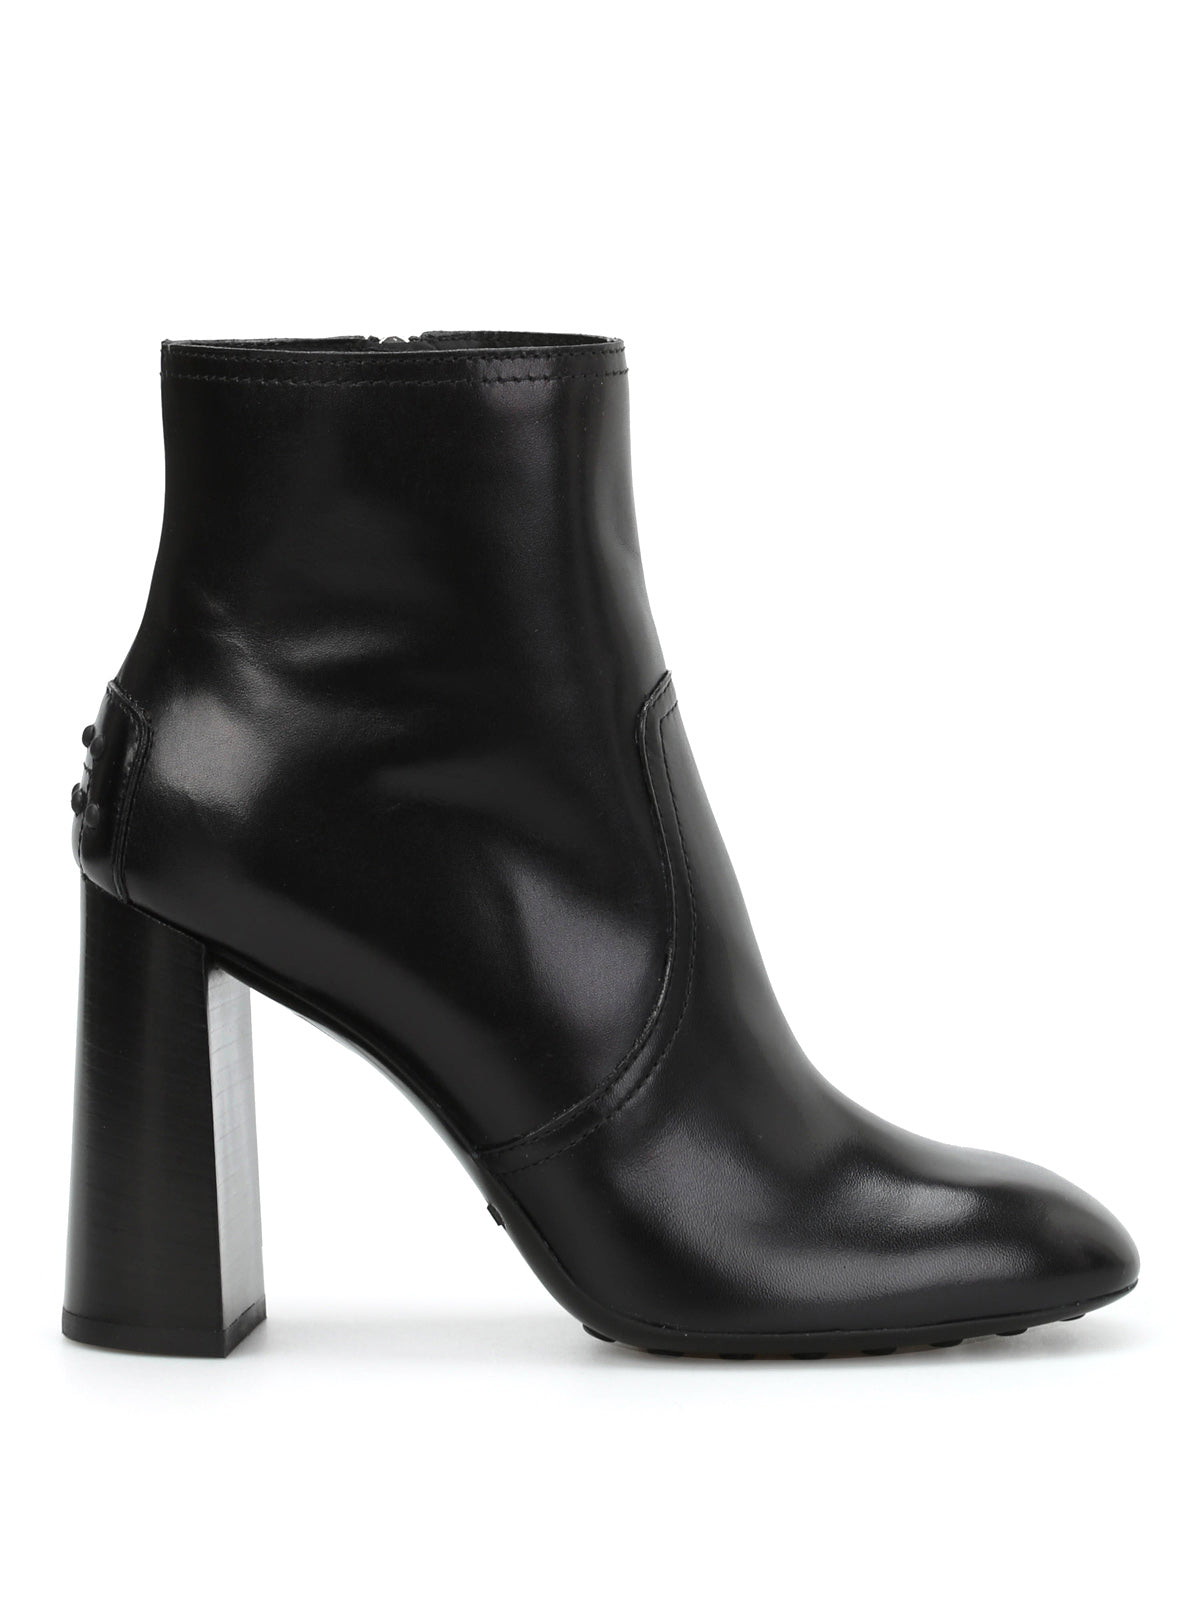 TOD'S SQUARE HEEL LEATHER ANKLE BOOTS